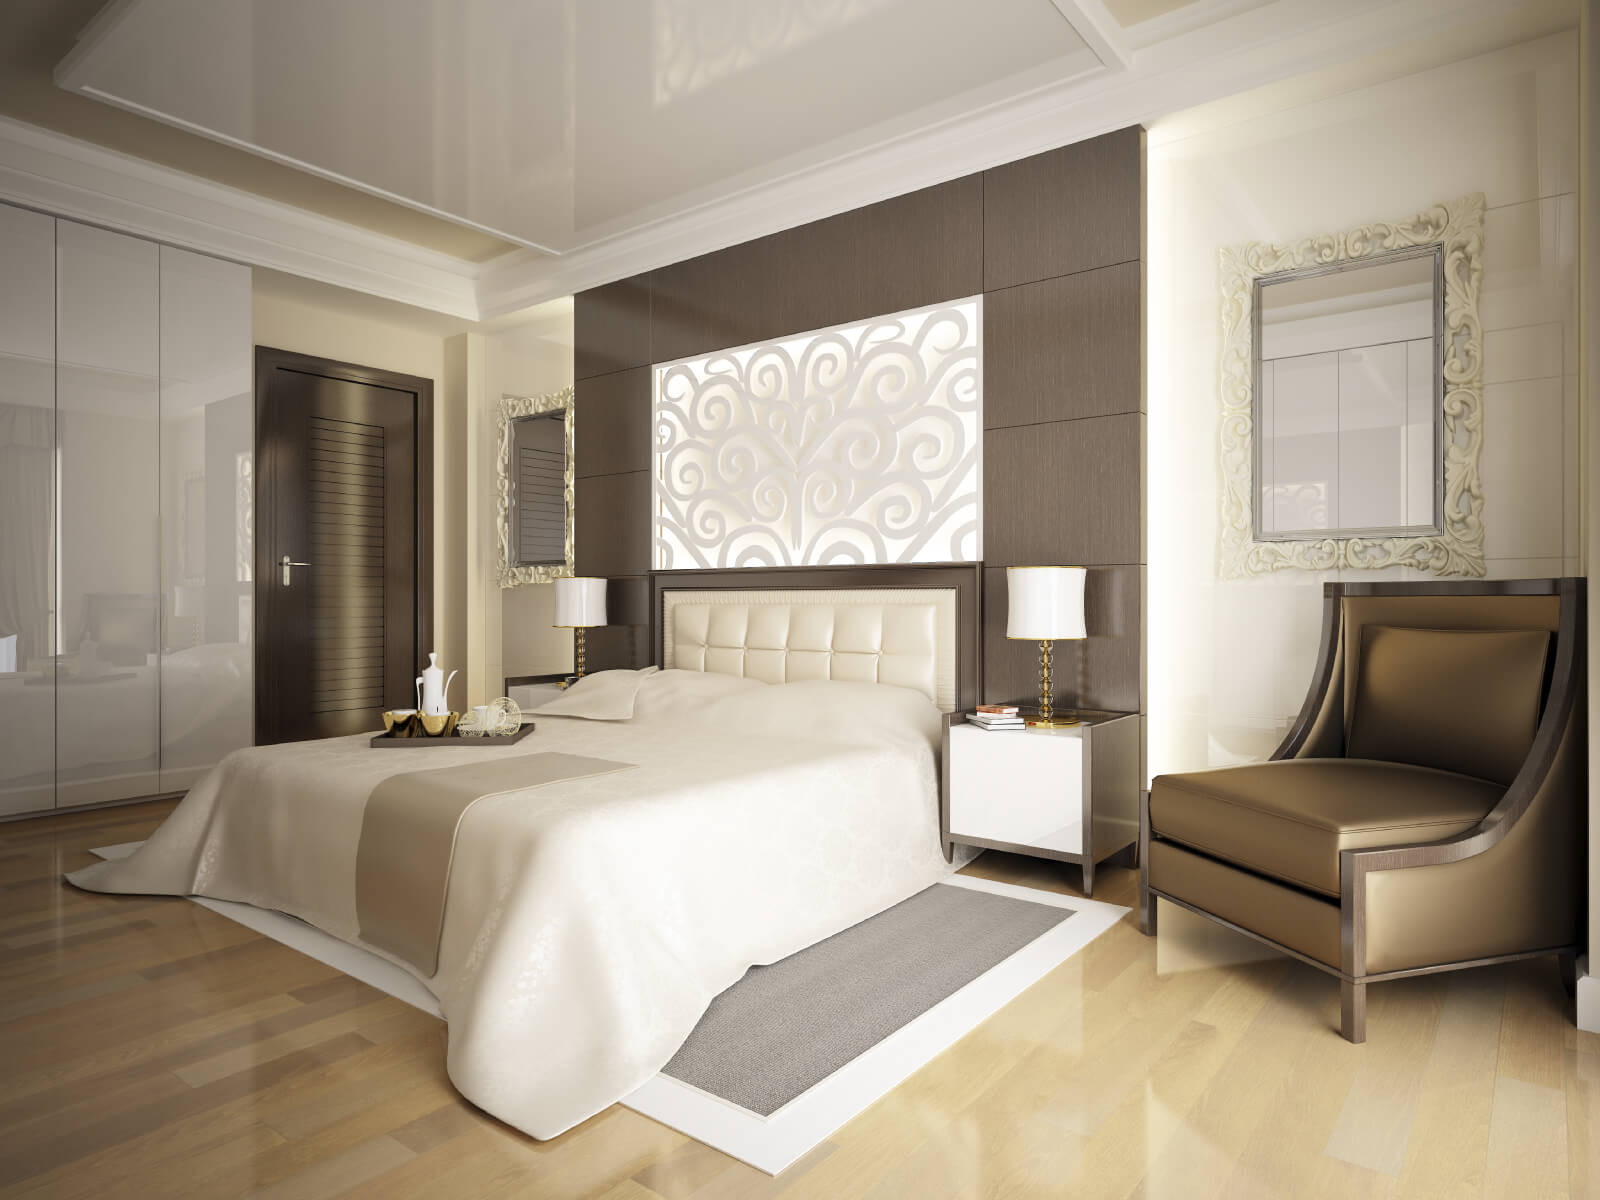 smooth lines and a neutral color palette add elegance to this hardwood floored master bedroom bedroom colors brown furniture